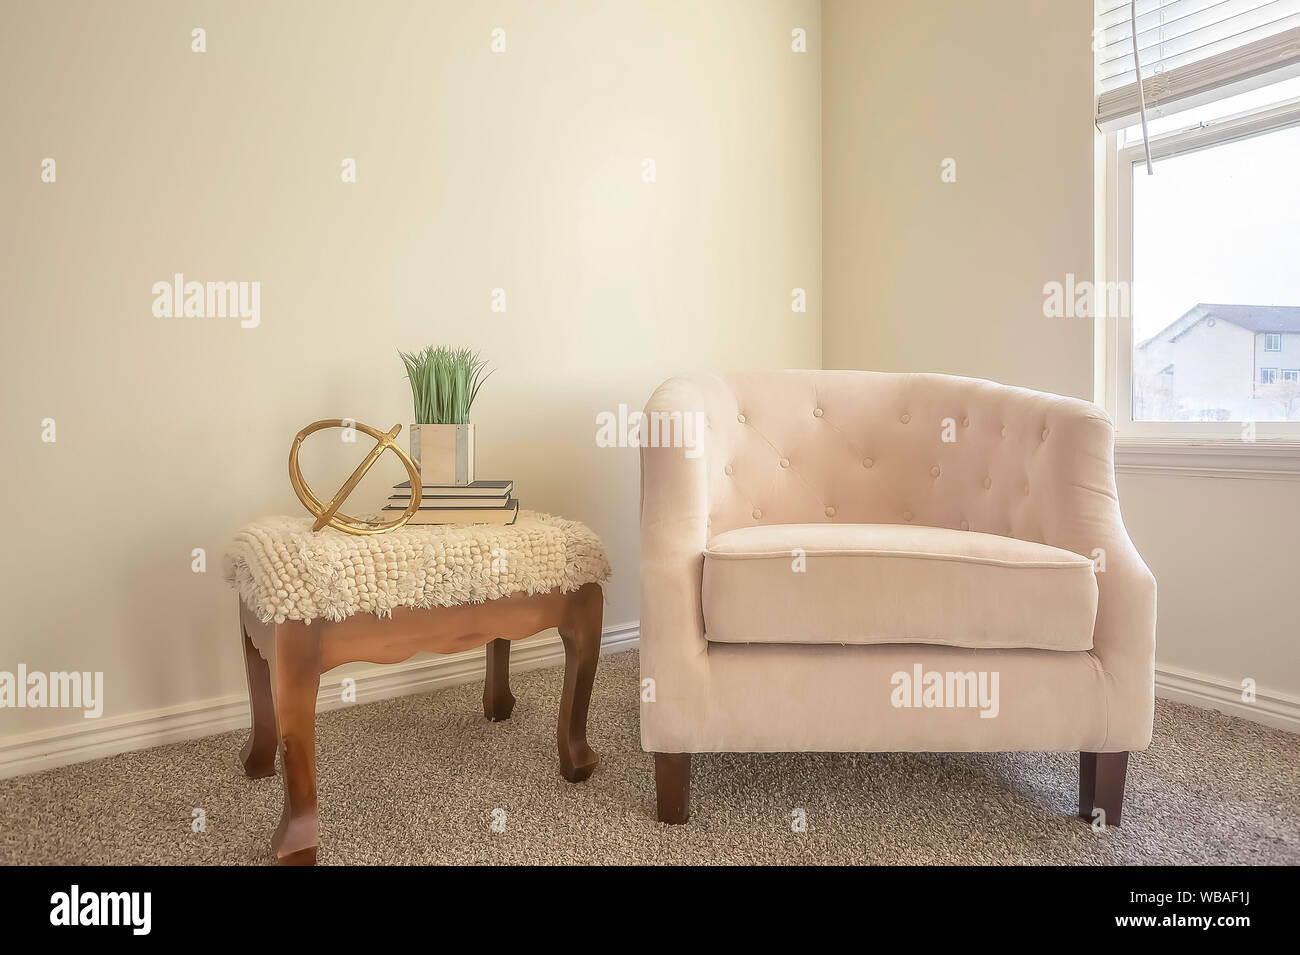 Cozy chair and wooden side table inside a room with white ...